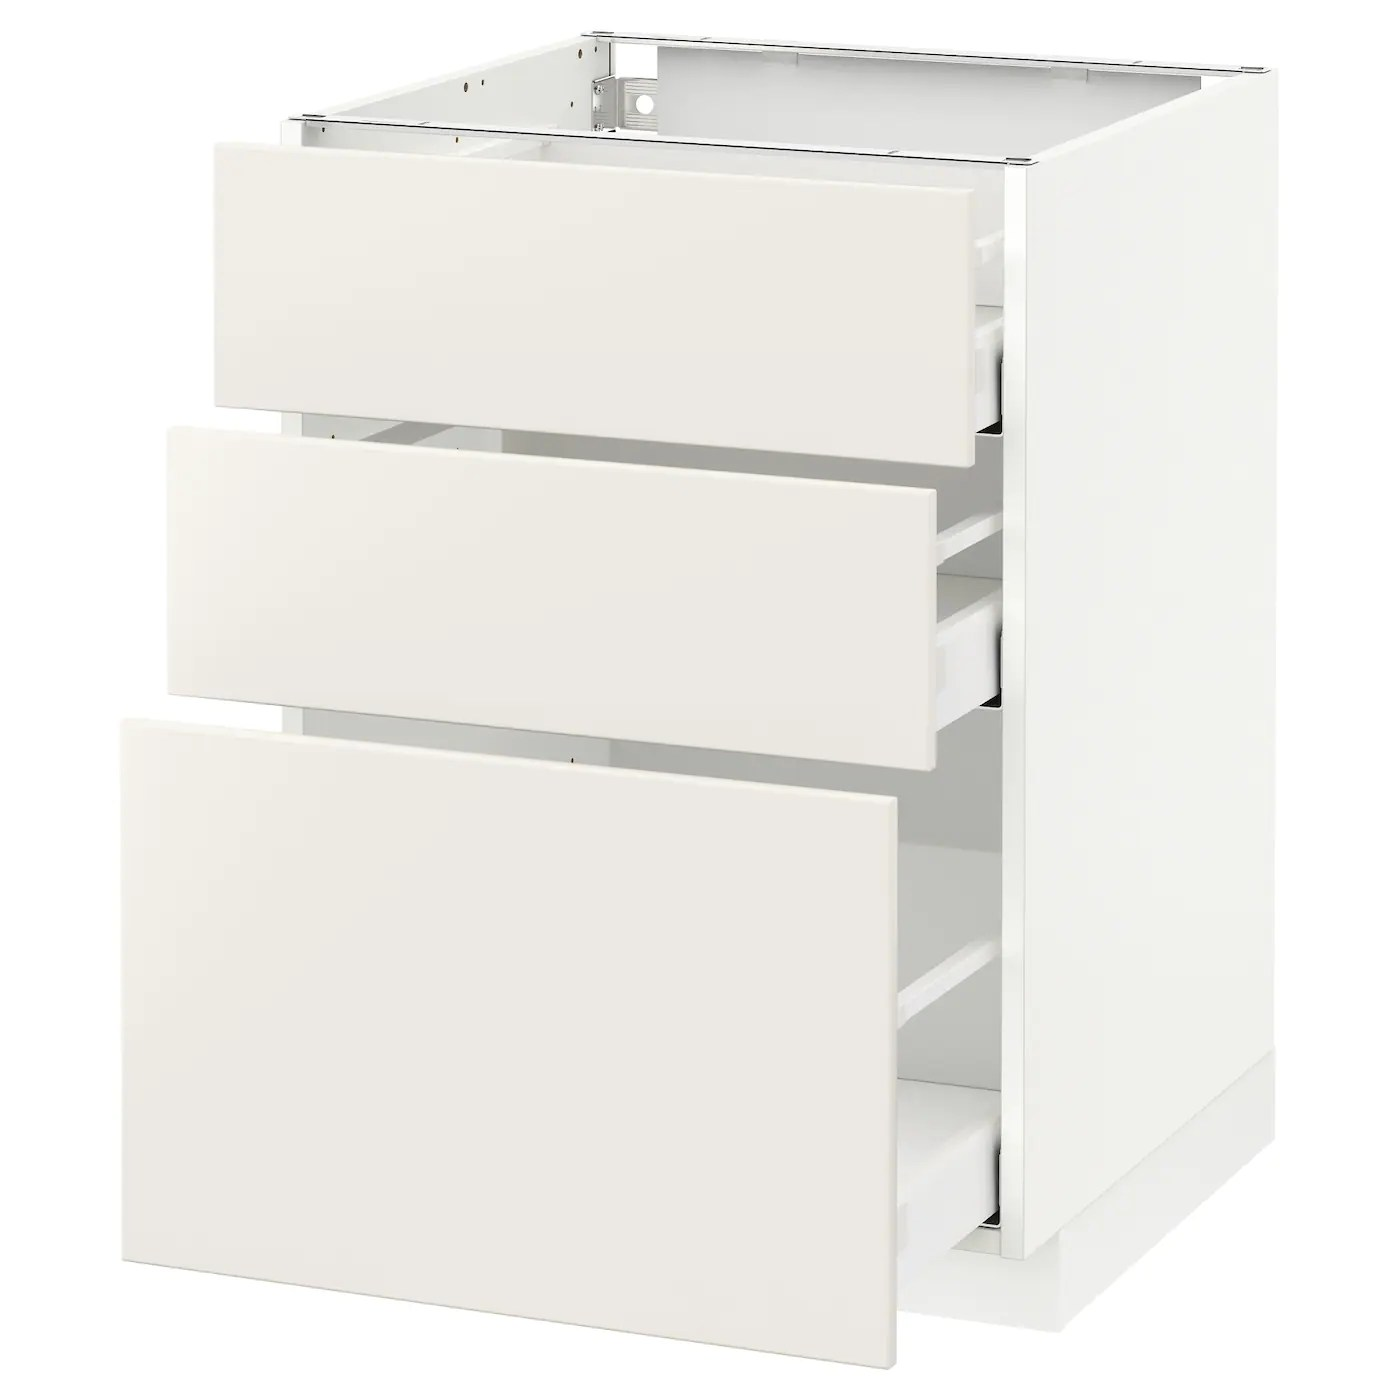 Unterschrank Küche Ikea Metod Base Cabinet With 3 Drawers - White Maximera/veddinge White 60x60x80 Cm (24x24x32 \